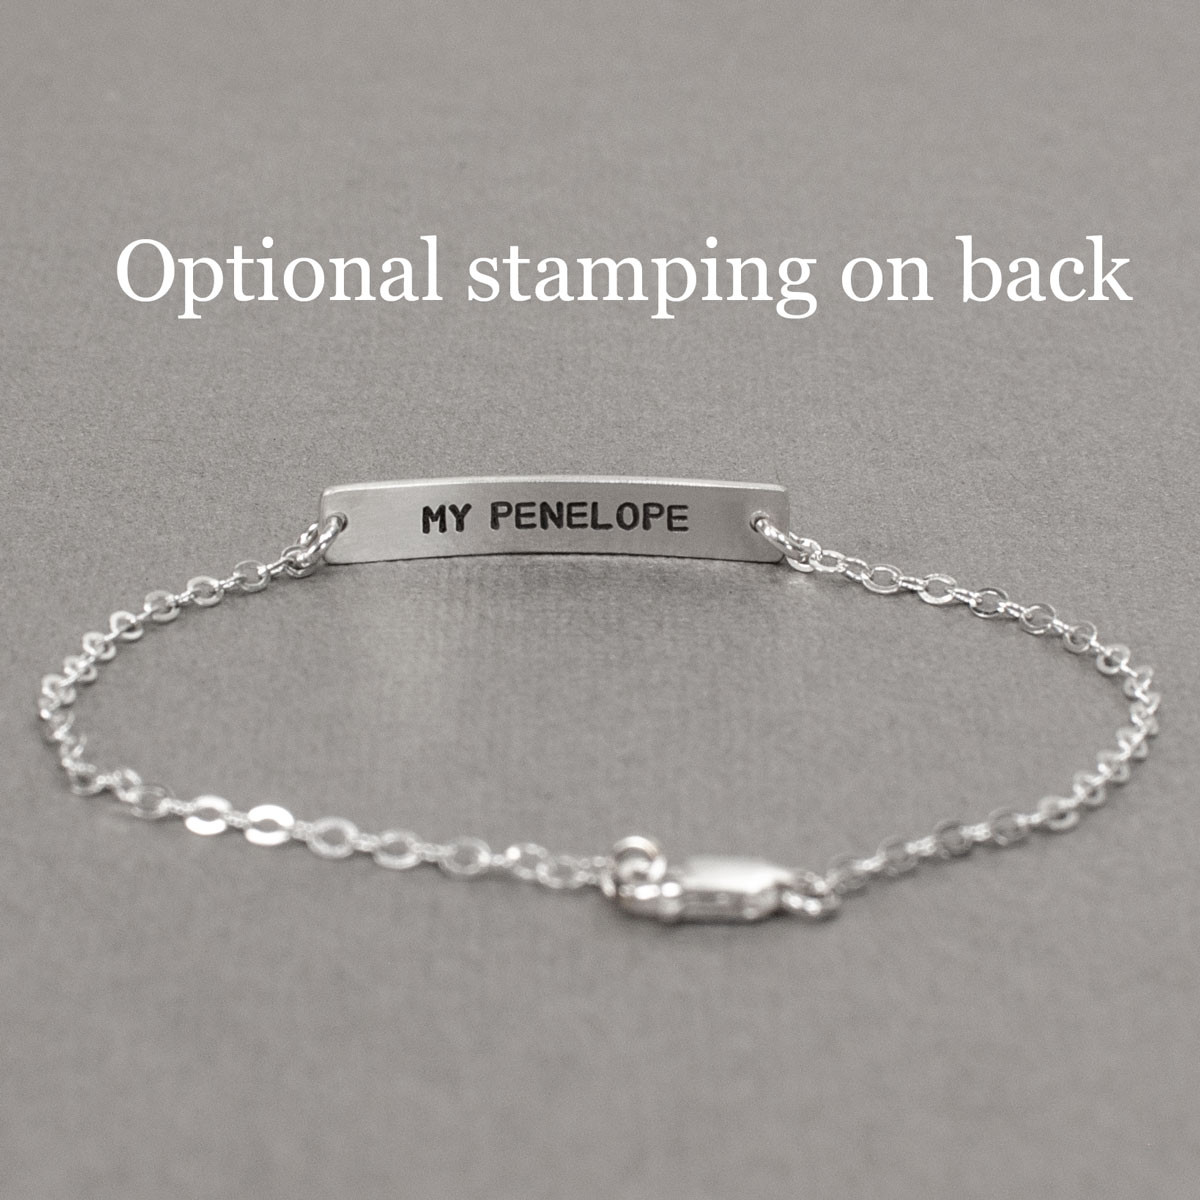 Dainty bracelet with your actual writing in sterling silver, shown with stamping on the back